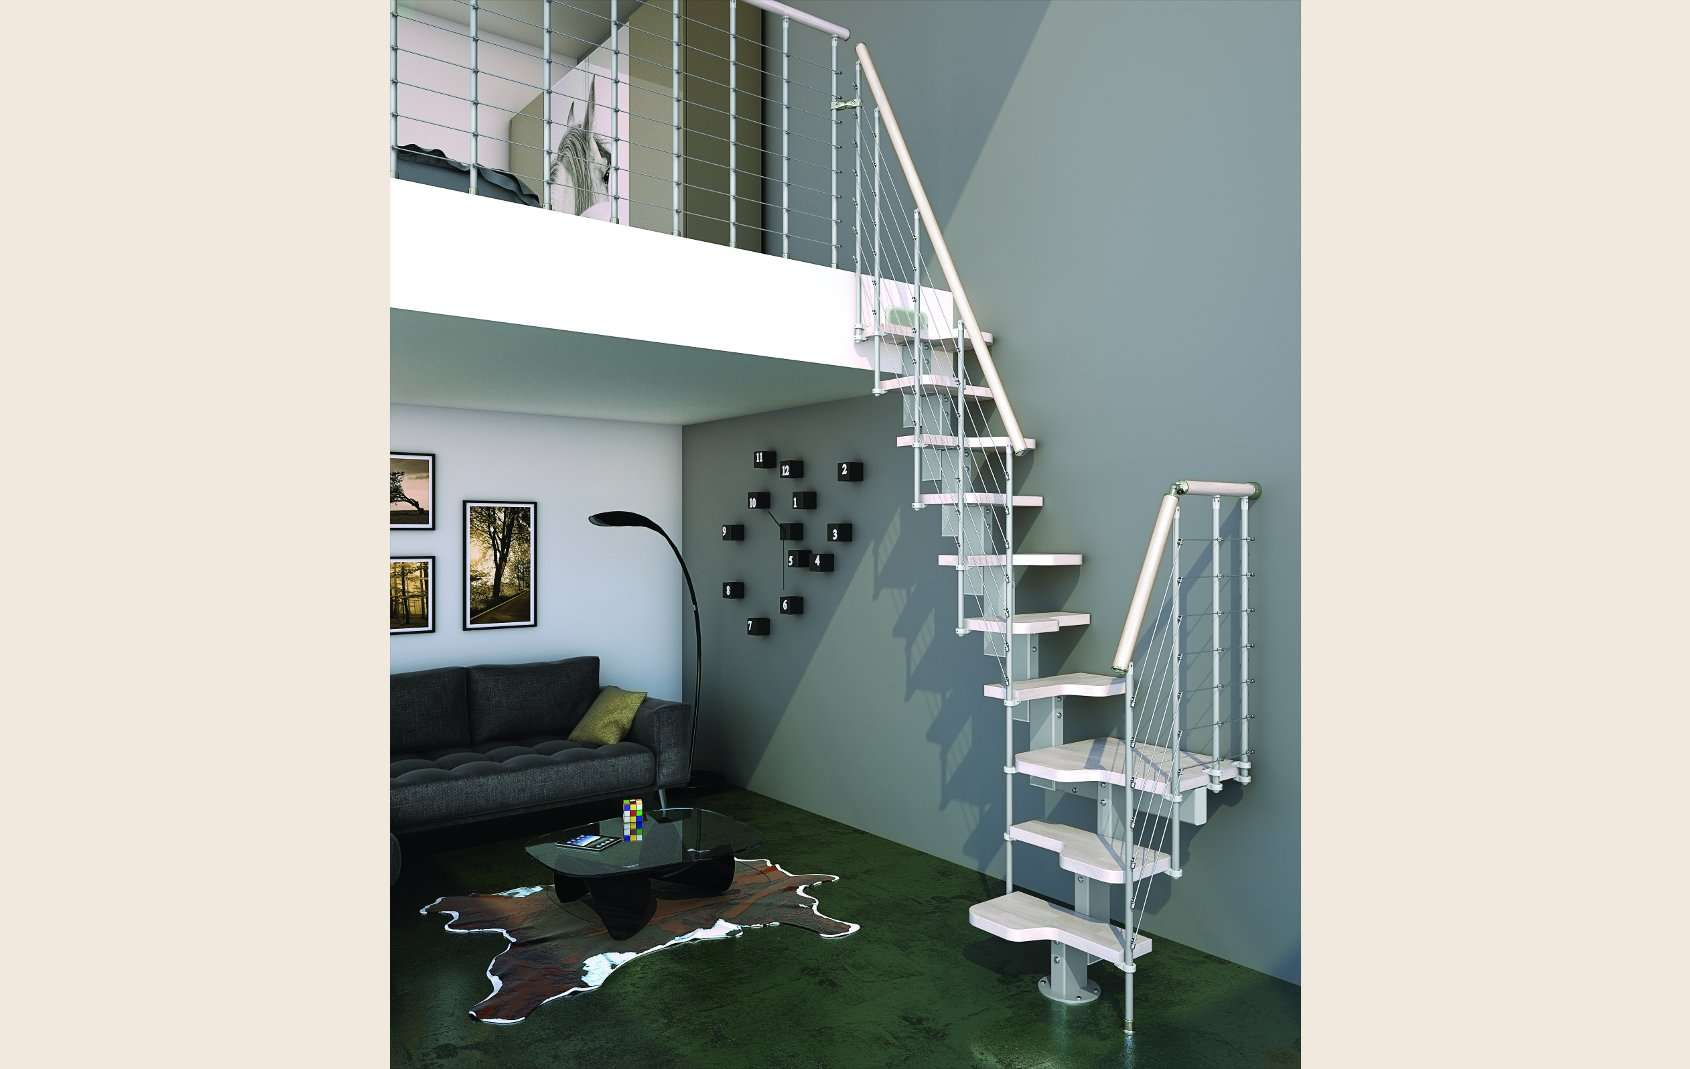 ᐅ Space Saver Stairs Space Saver Stairs Staircases Stairs